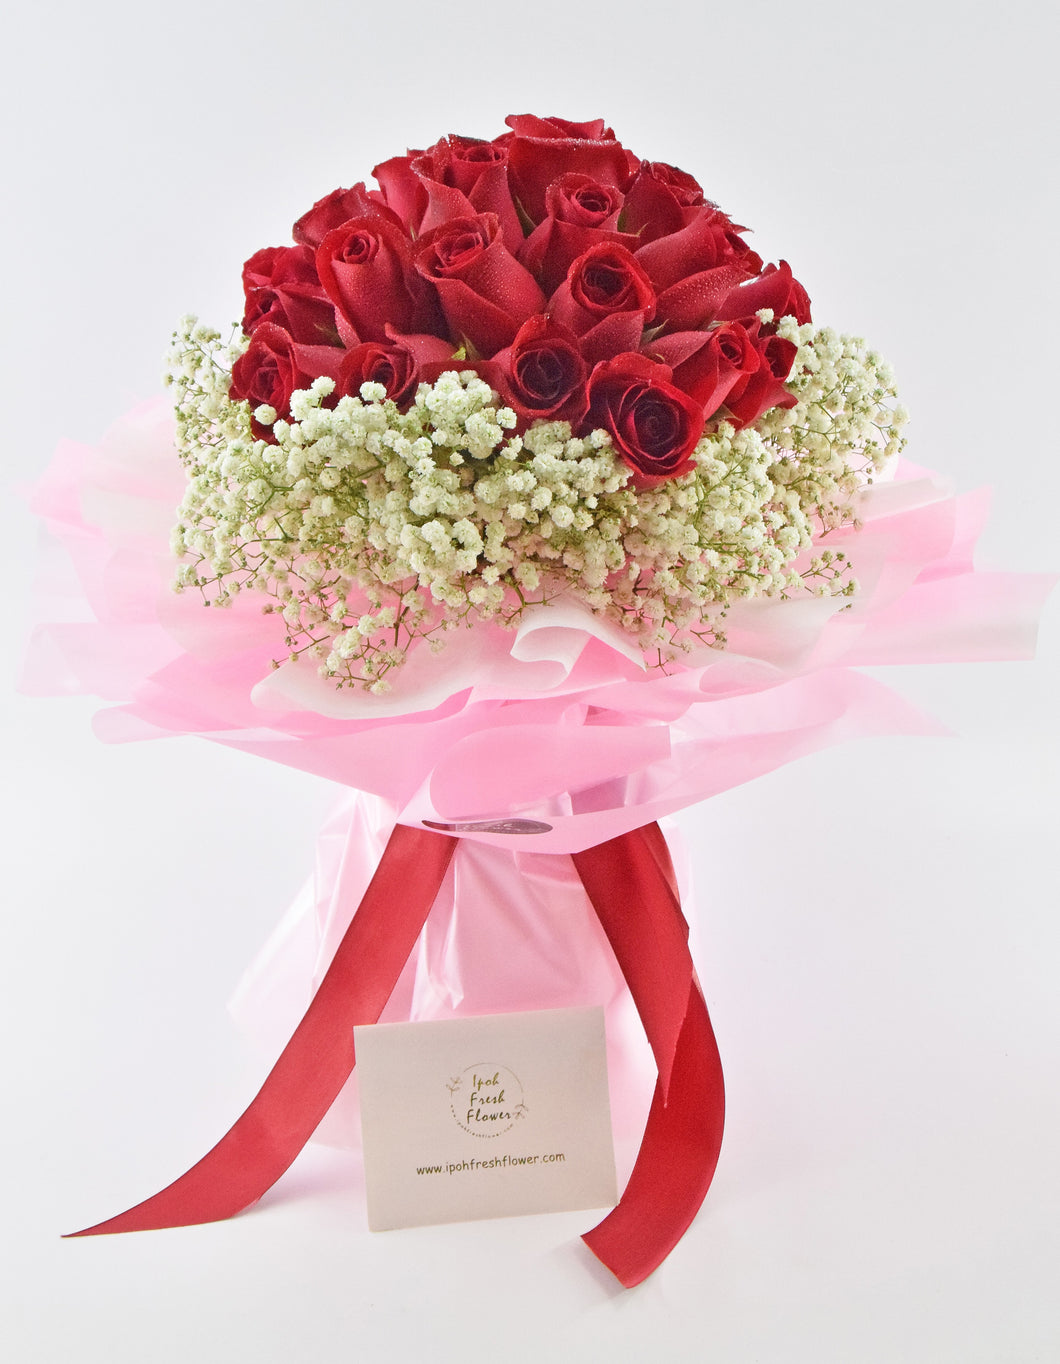 Endless Love- 50 Roses| Fresh Flower Bouquet| Ipoh Free Delivery| Ipohfreshflower.com